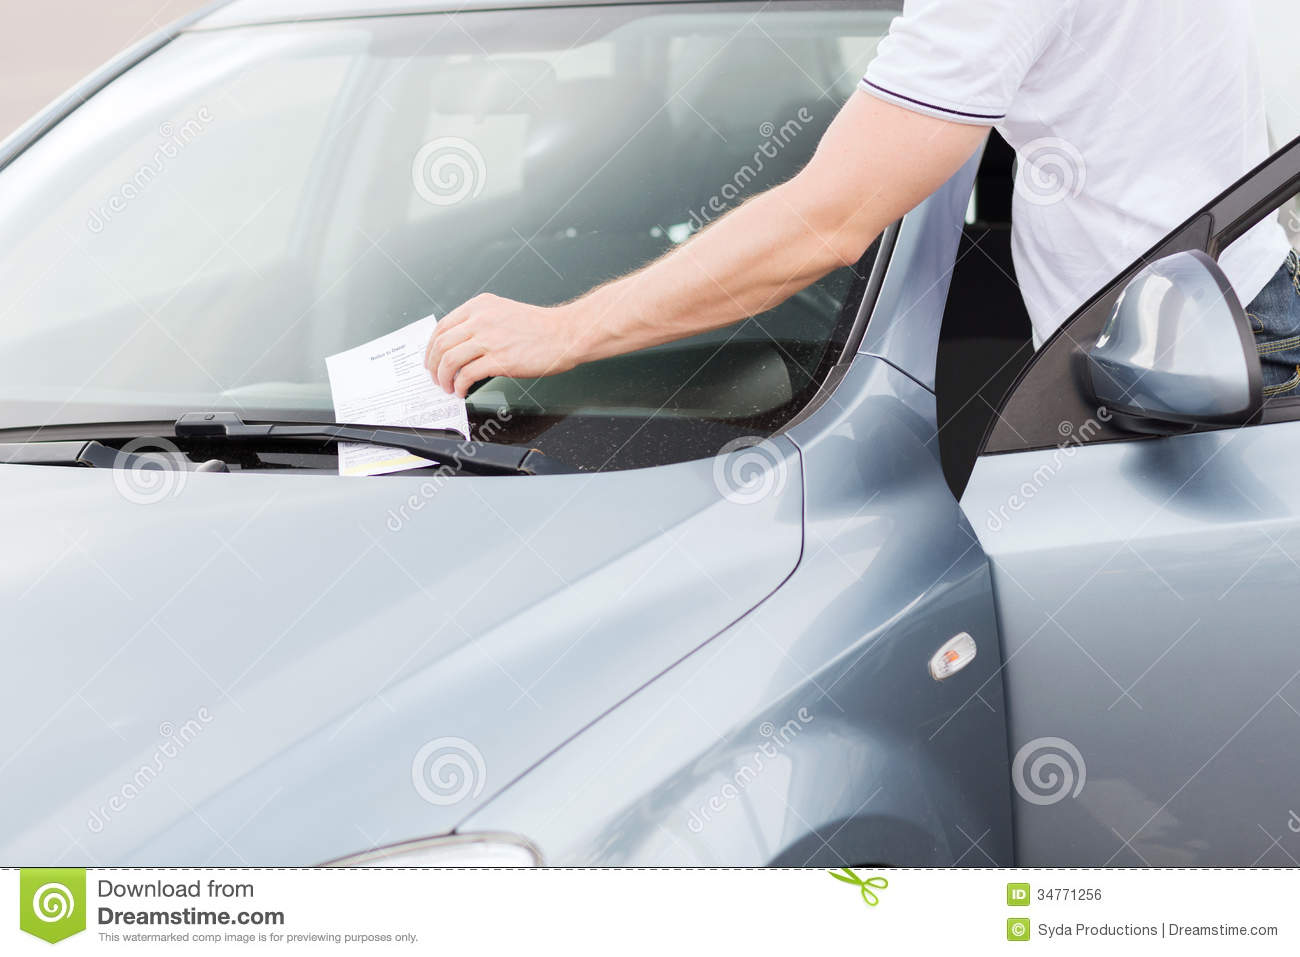 Parking Ticket On Car Windscreen Royalty Free Stock Image